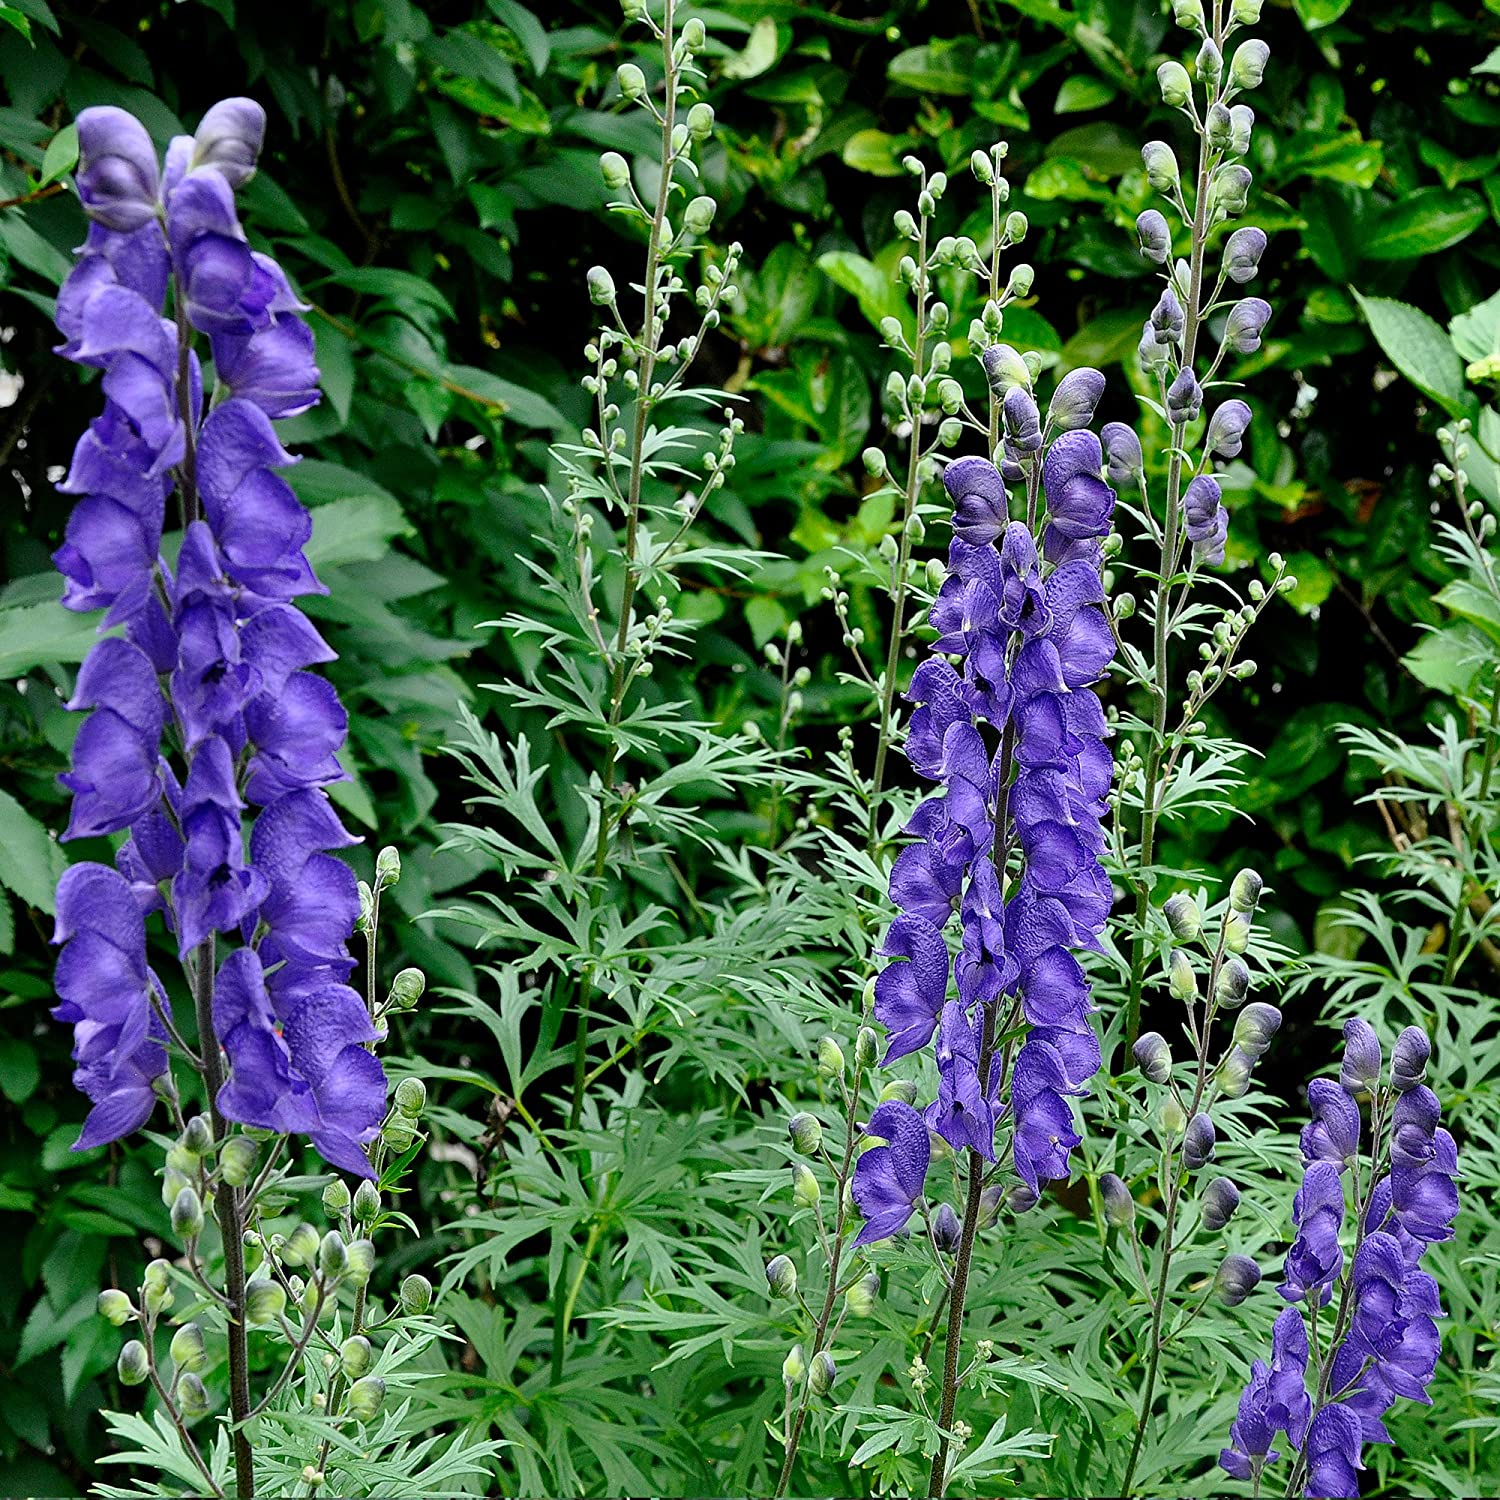 Aconitum napellus Plant Seeds Now or Save Seeds for Many Years 50+ Rare Medicinal Herb Seeds in FROZEN SEED CAPSULES for the Gardener /& Rare Seeds Collector Monkshood Seeds